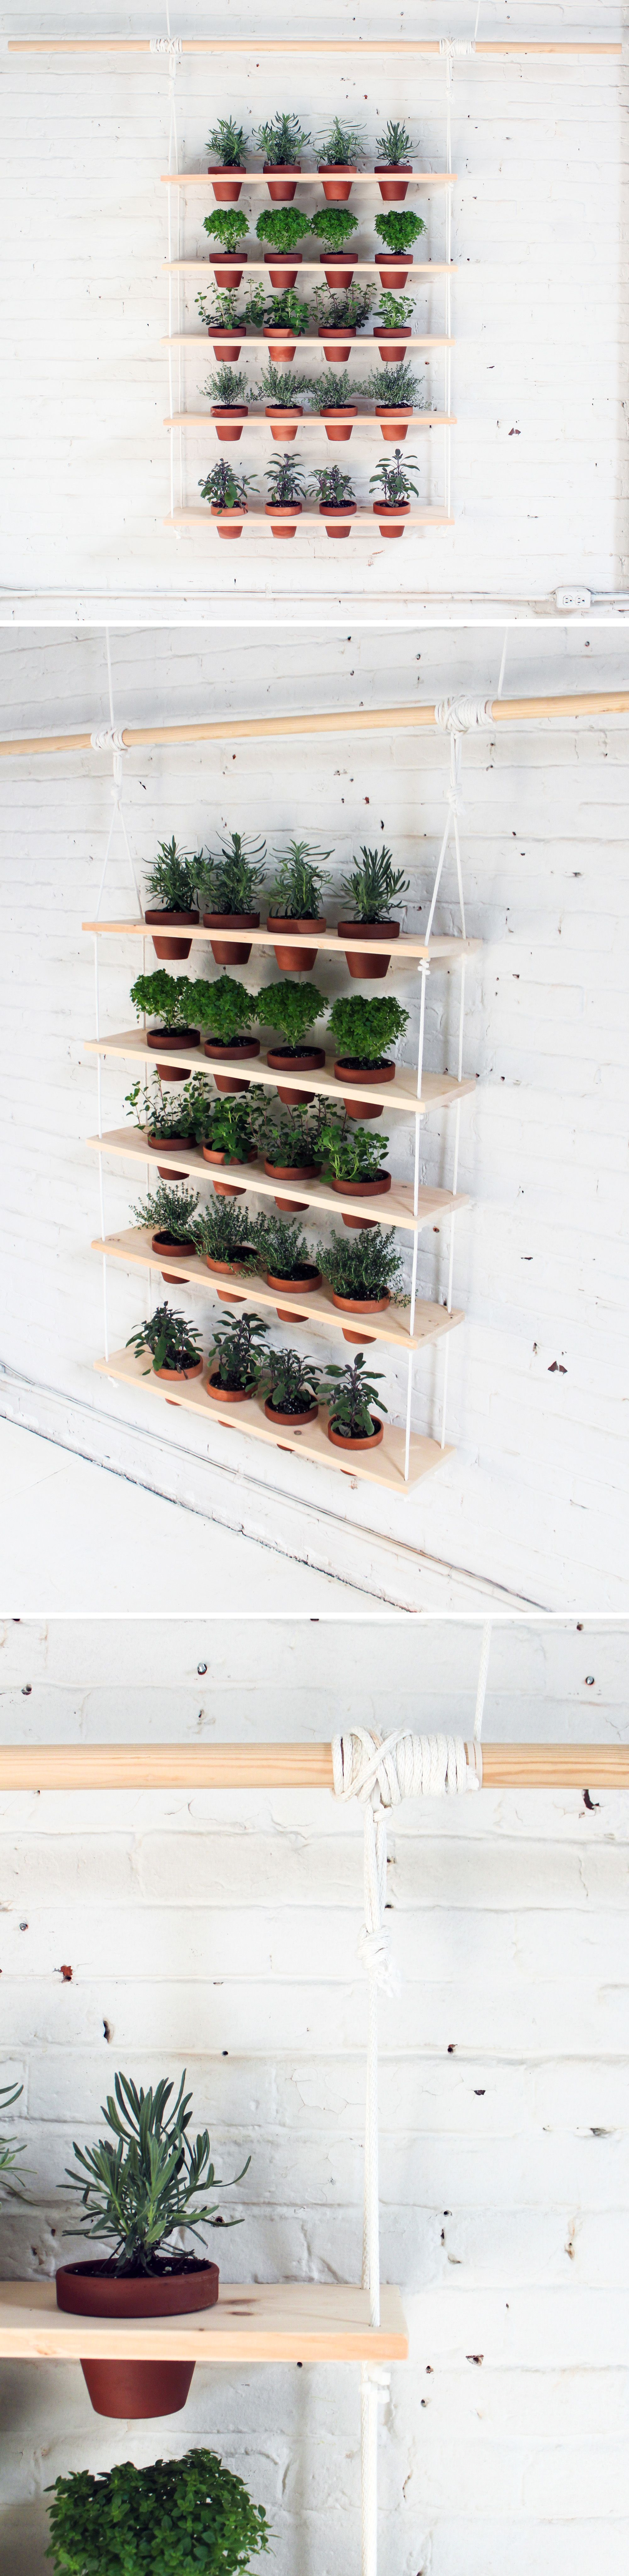 Hanging Indoor Herb Garden Hanging Herb Garden Ideas For Your Home Pinterest Diy